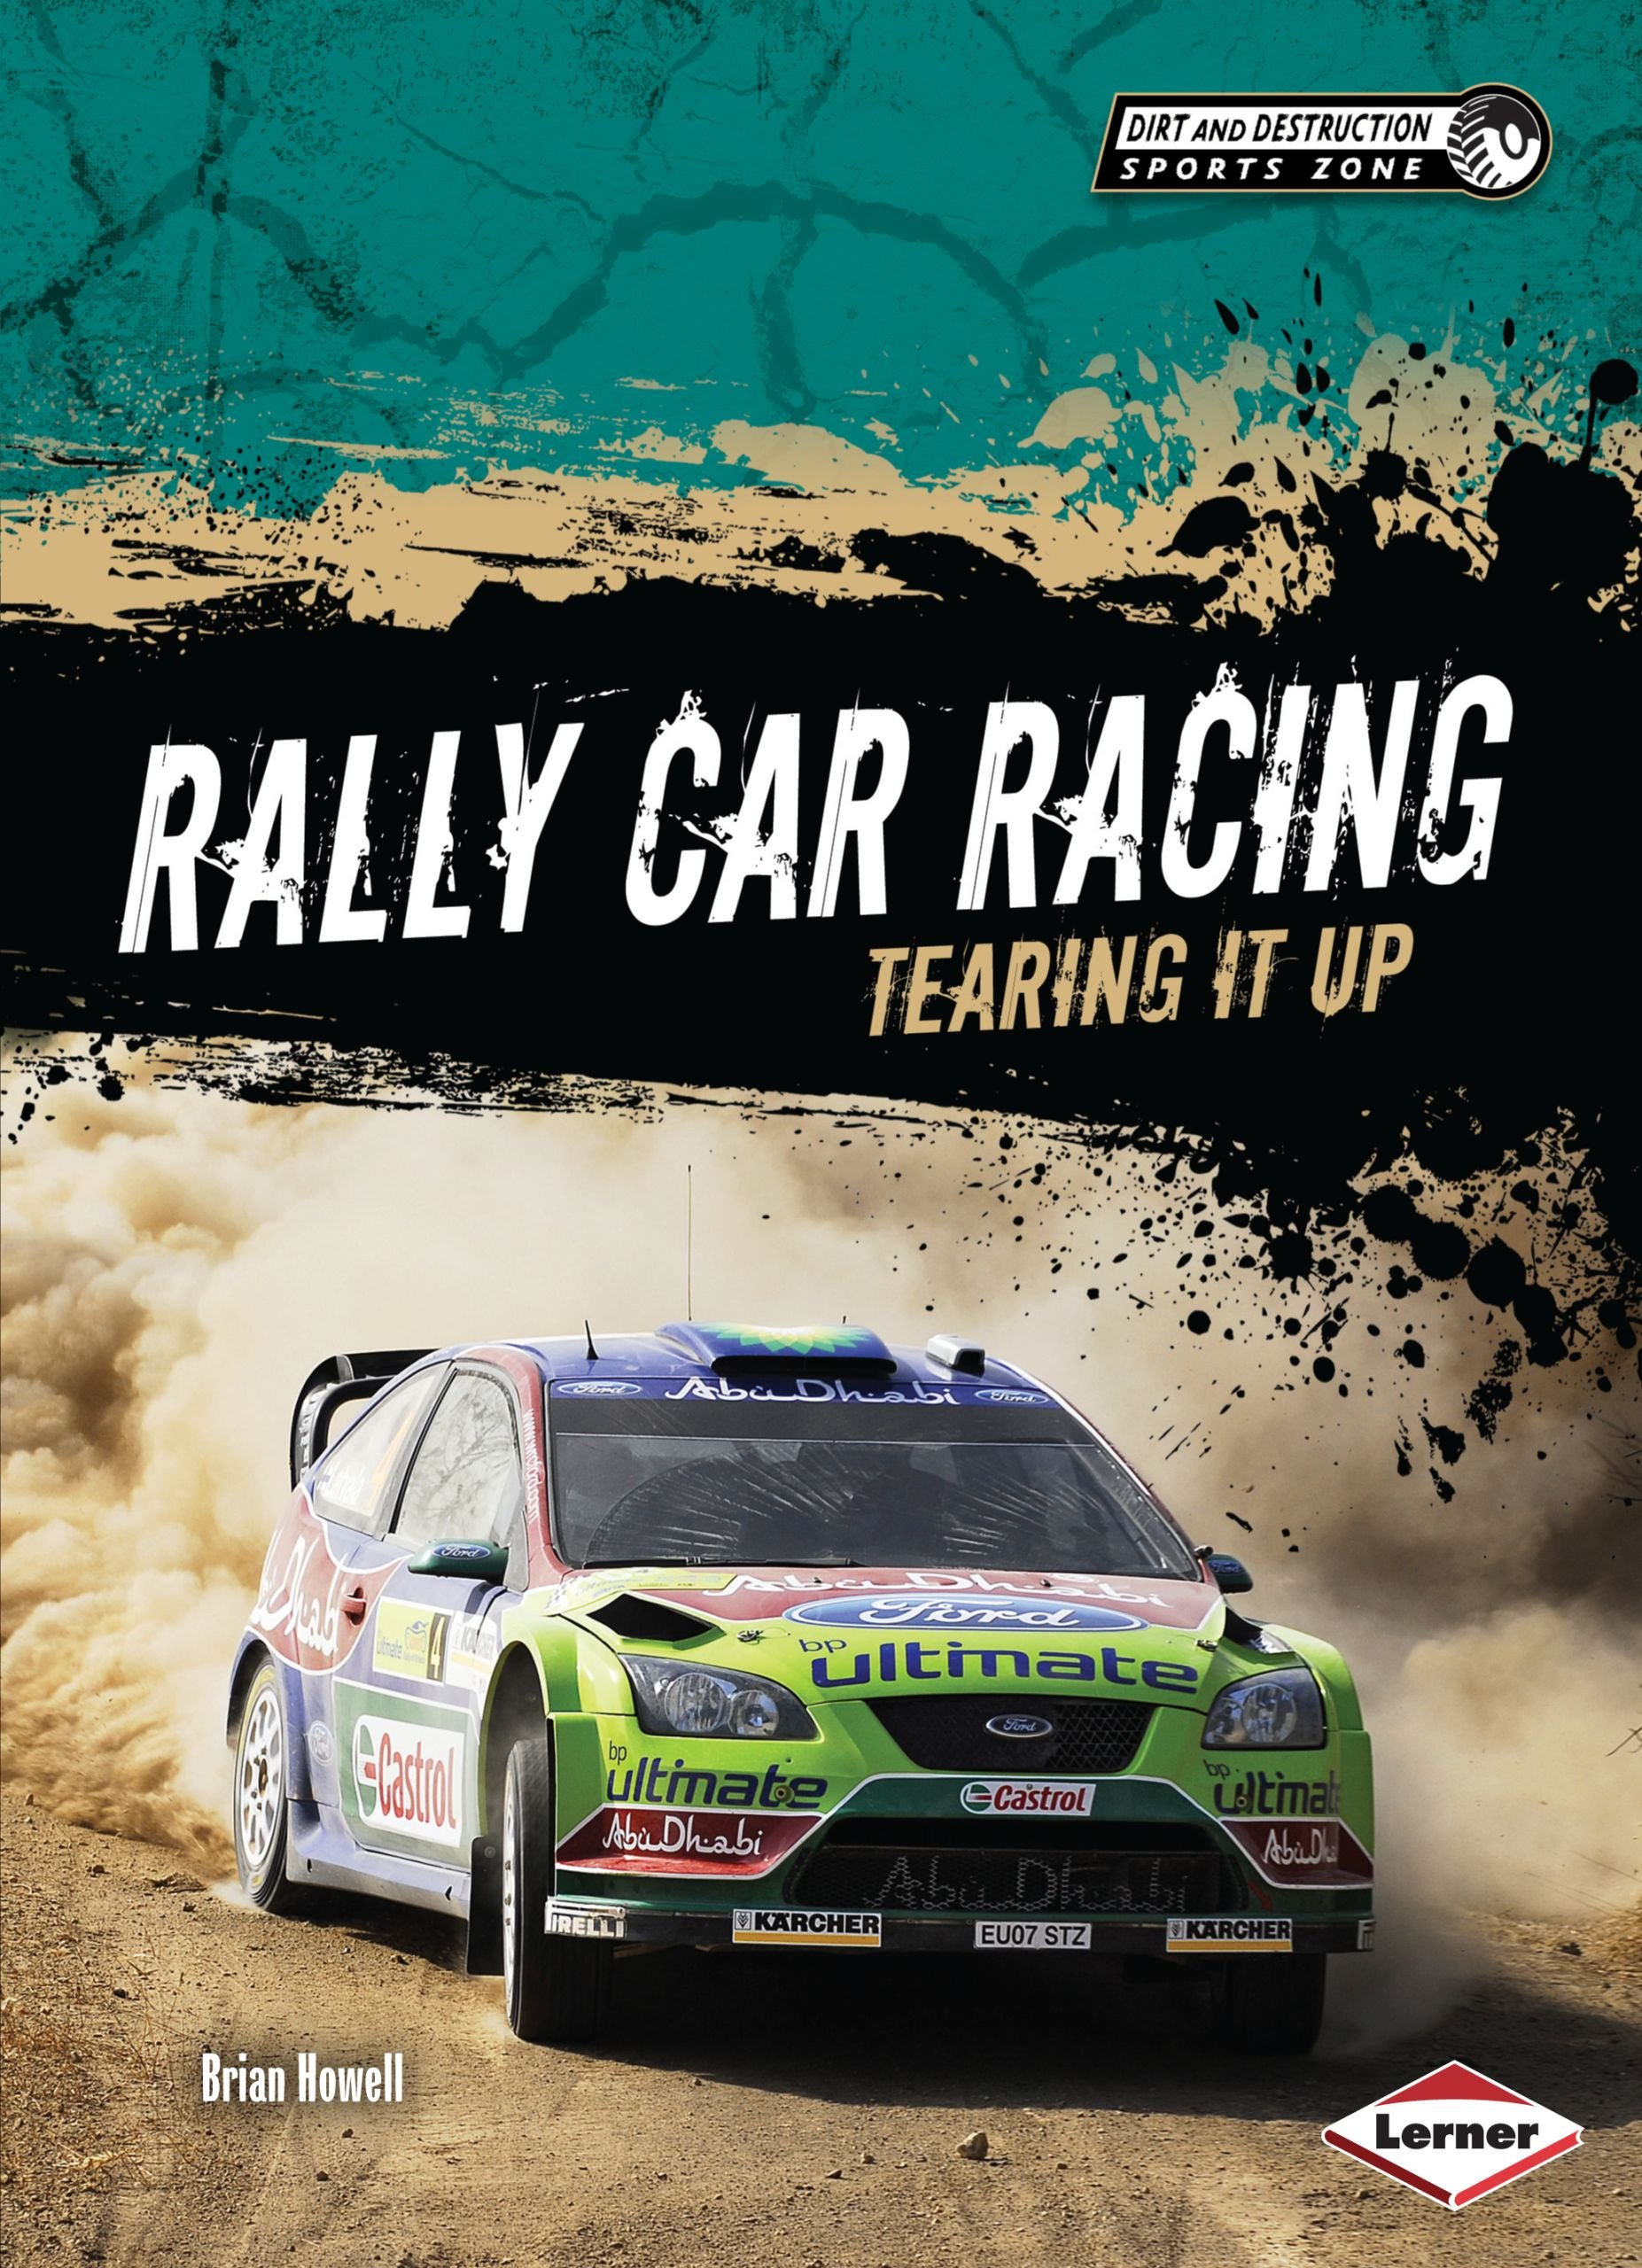 Rally Car Racing Tearing It Up Dirt and Destruction Sports Zone